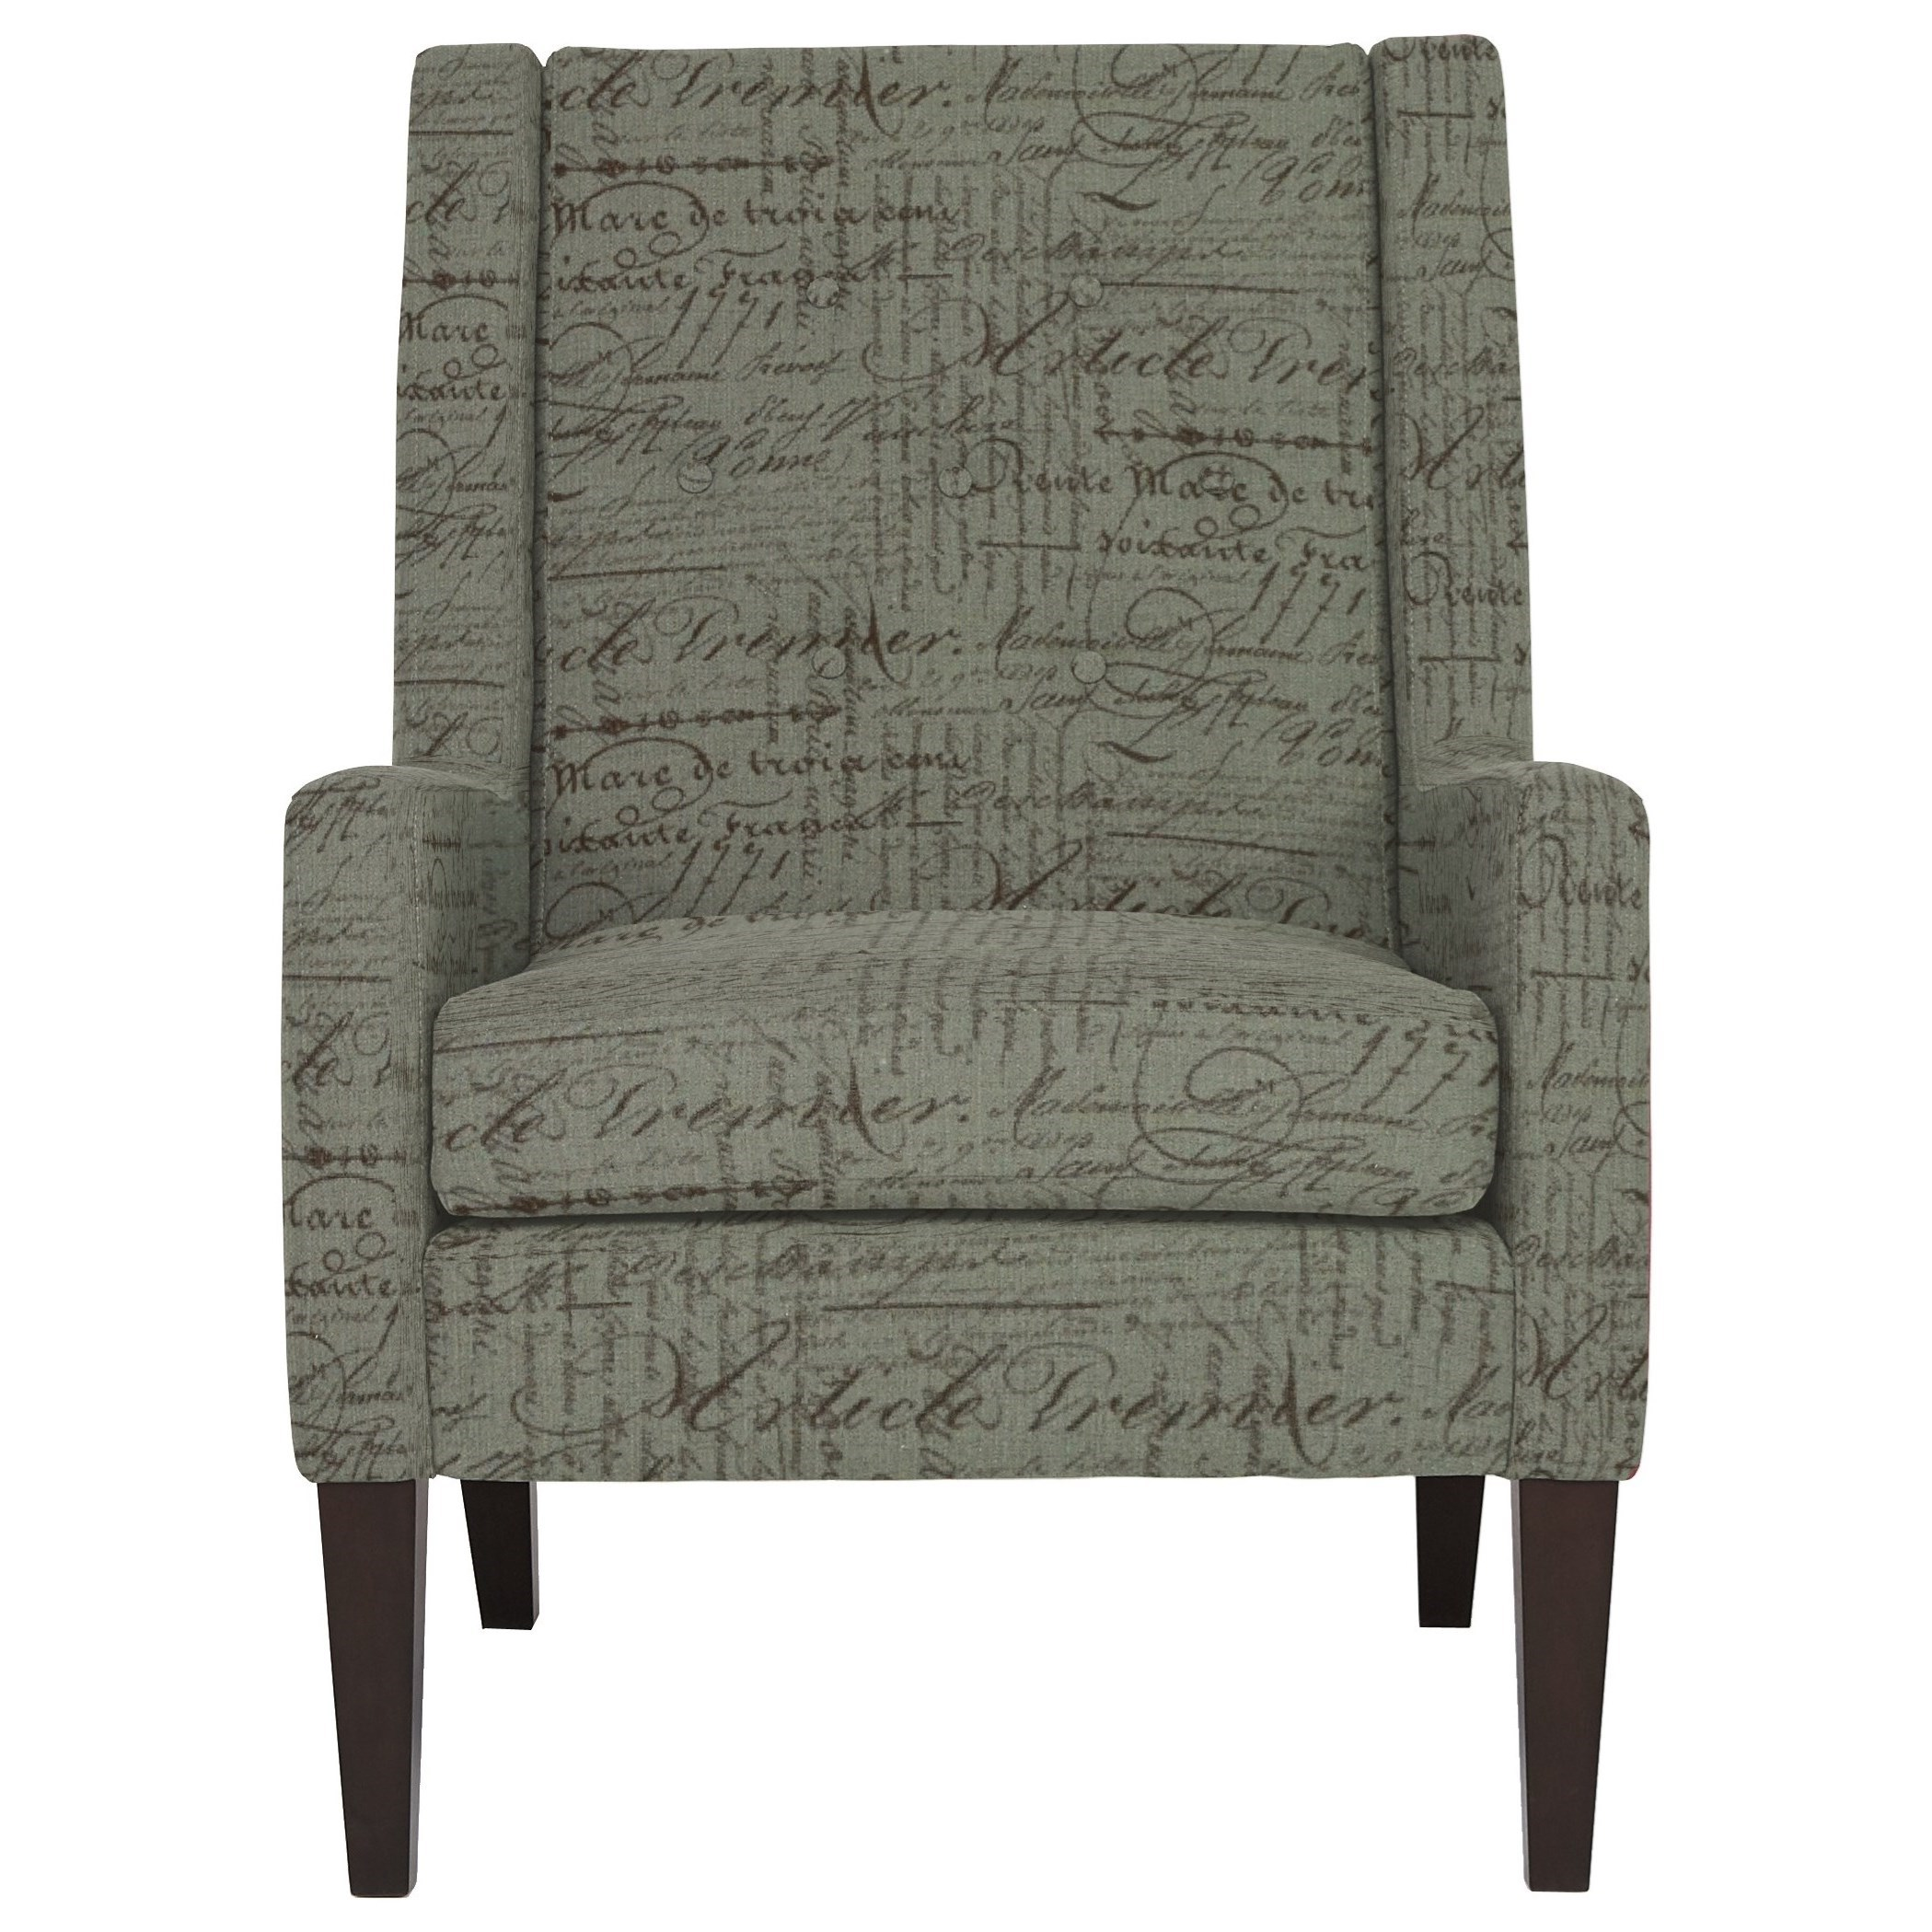 Best Home Furnishings Chairs - Accent Chair - Item Number: 2510E-34592